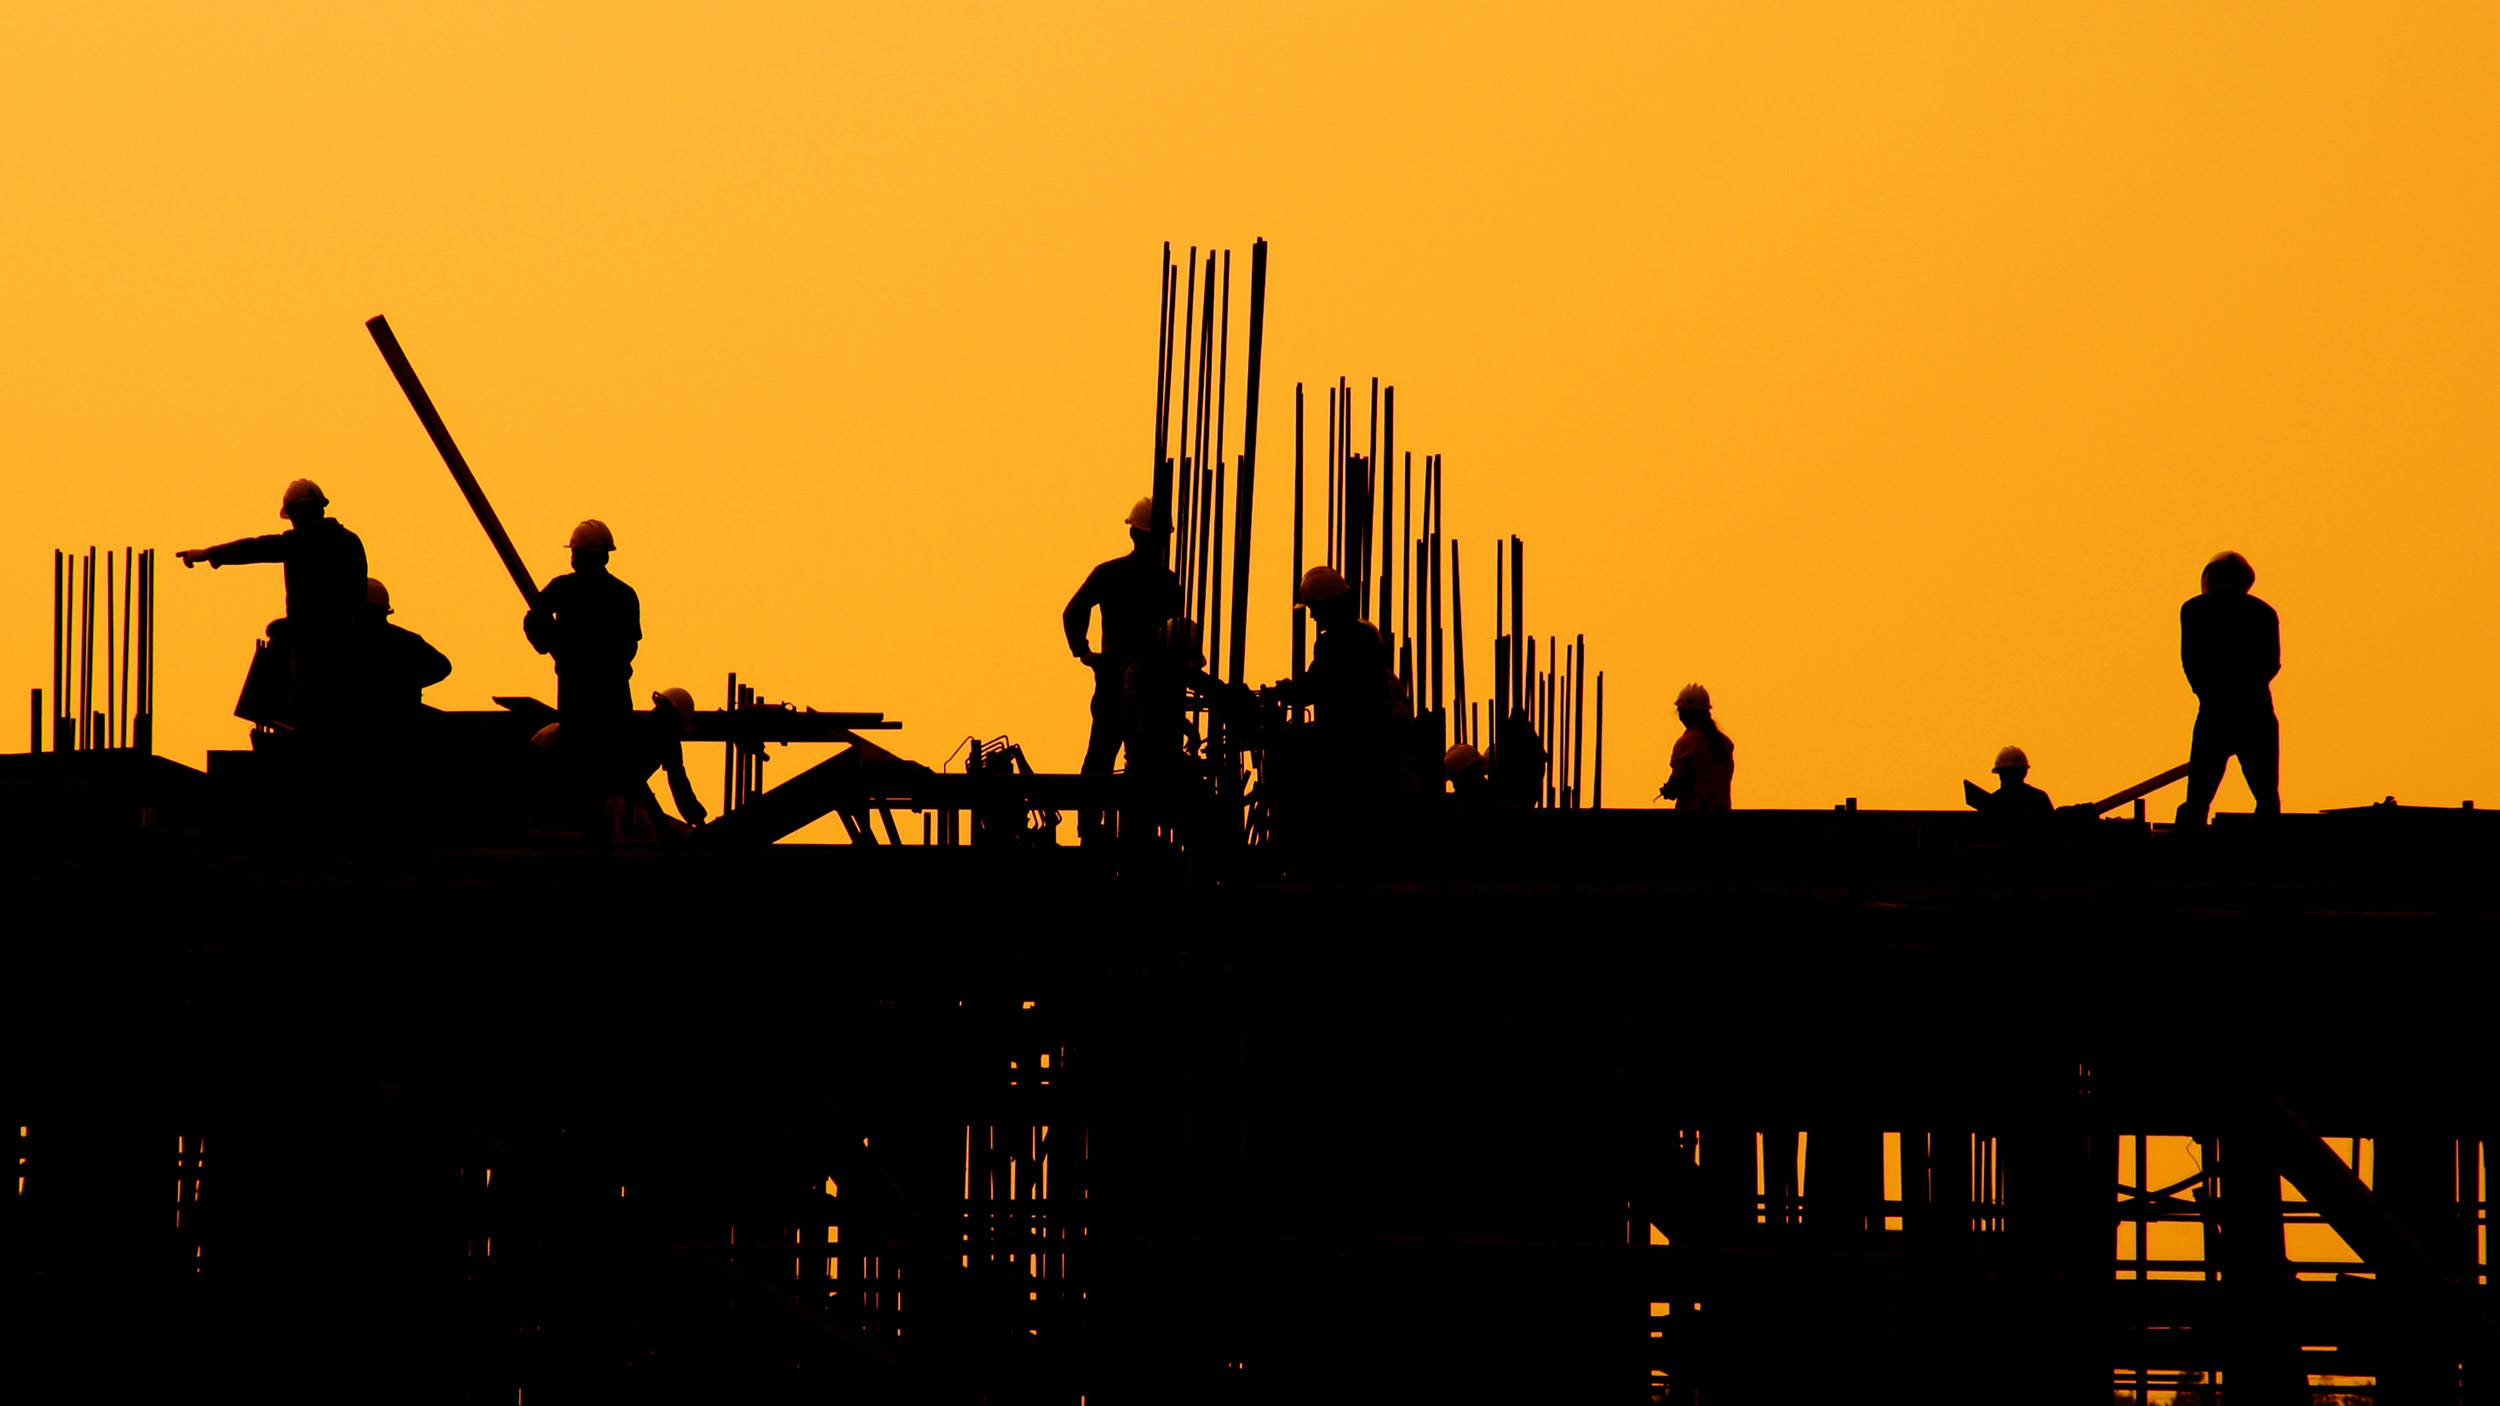 Construction workers silhouetted against the sunset